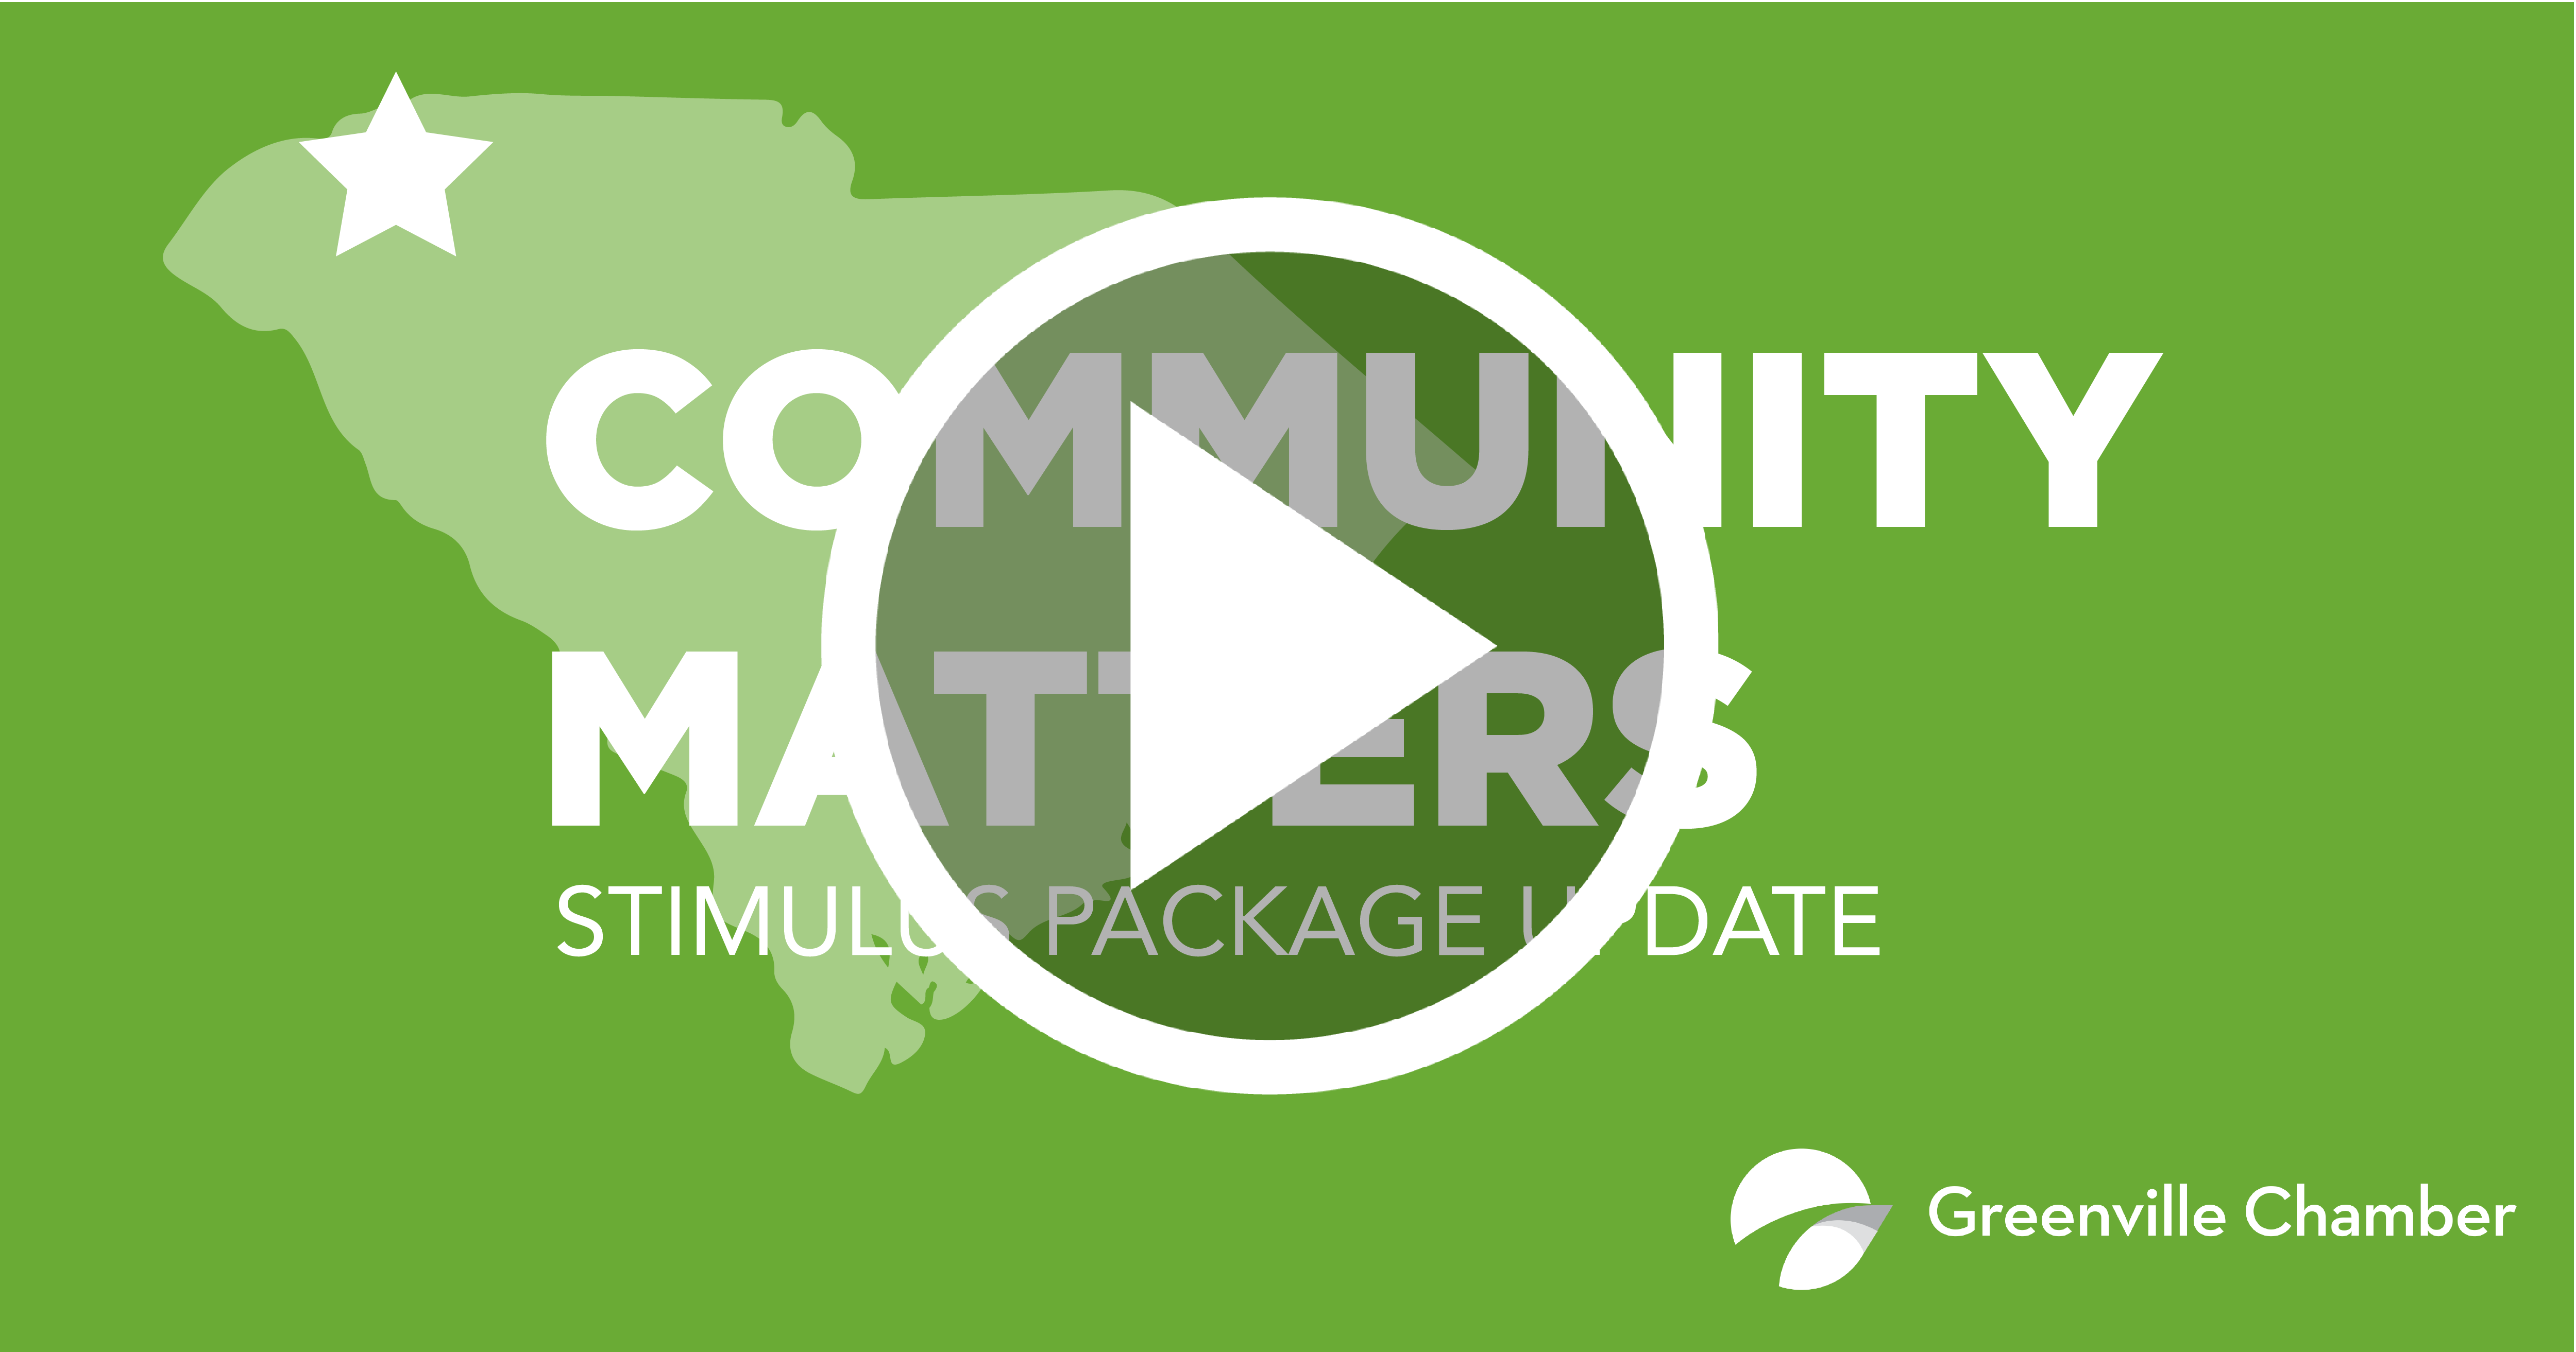 Greenville Chamber Of Commerce Community Matters Stimulus Package Update